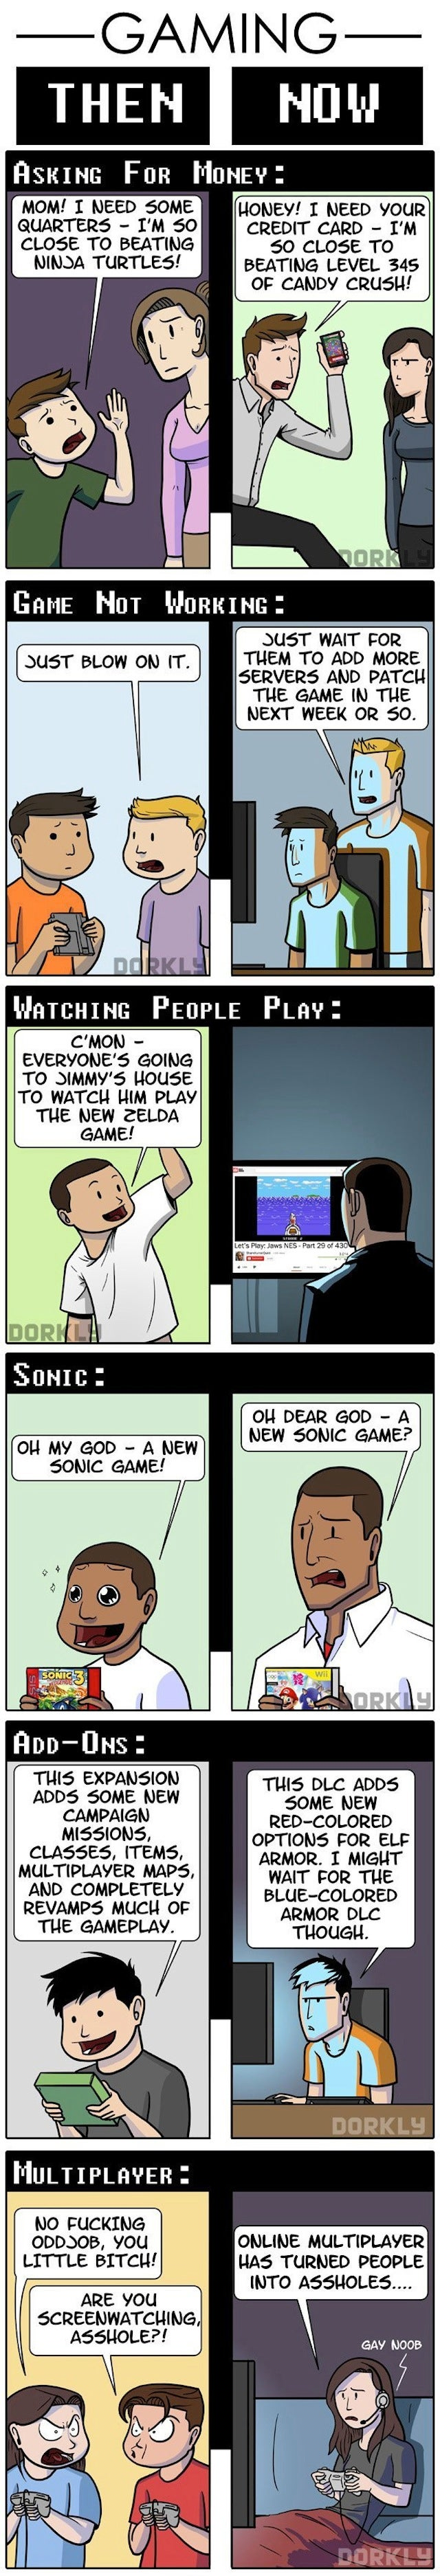 Life With Video Games Has Gotten More Depressing, Funnier